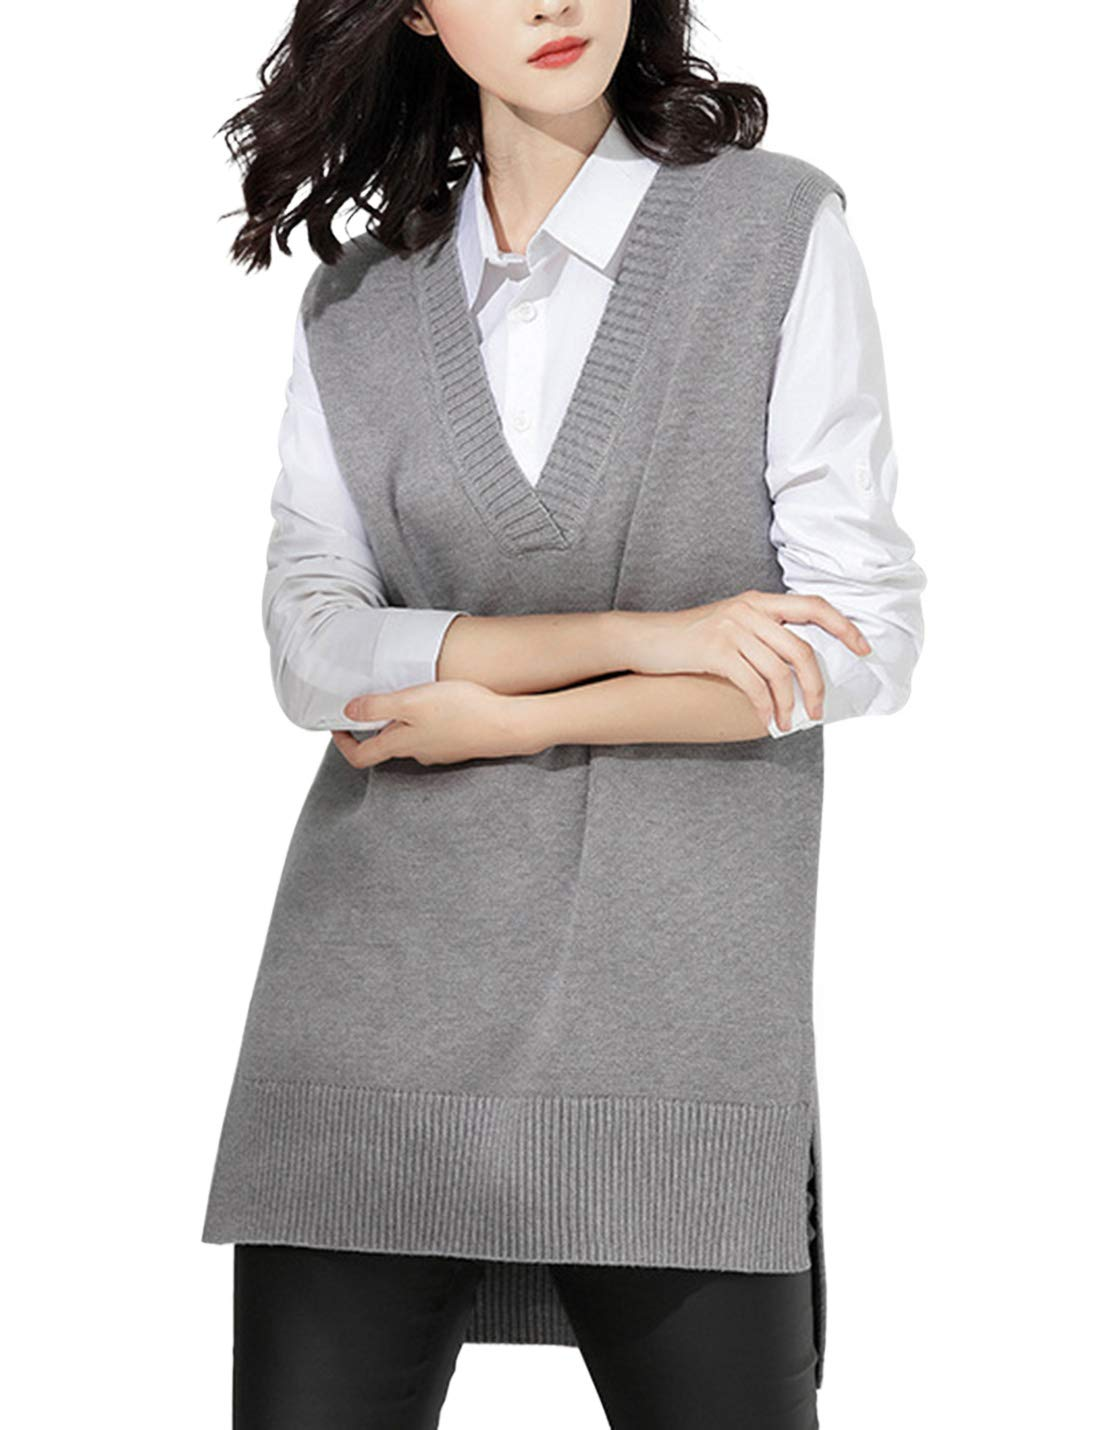 Gihuo Women's Casual V Neck Knitted Pullover Sleeveless Sweater Vest